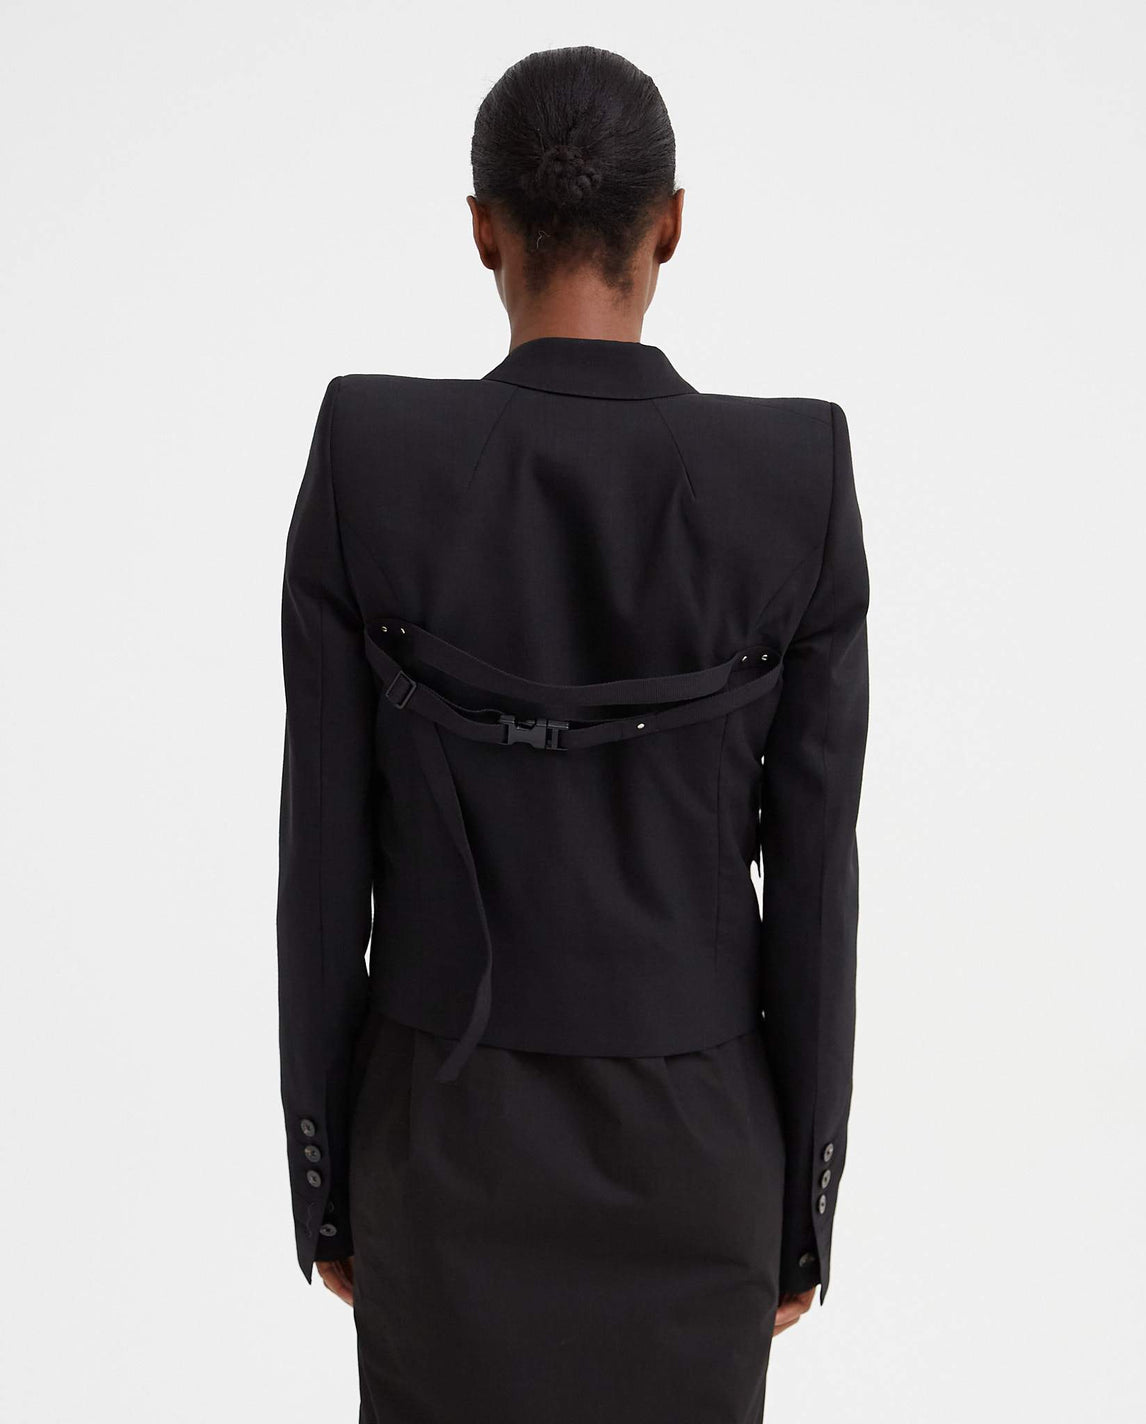 Alice Cropped Jacket - Black WOMENS RICK OWENS